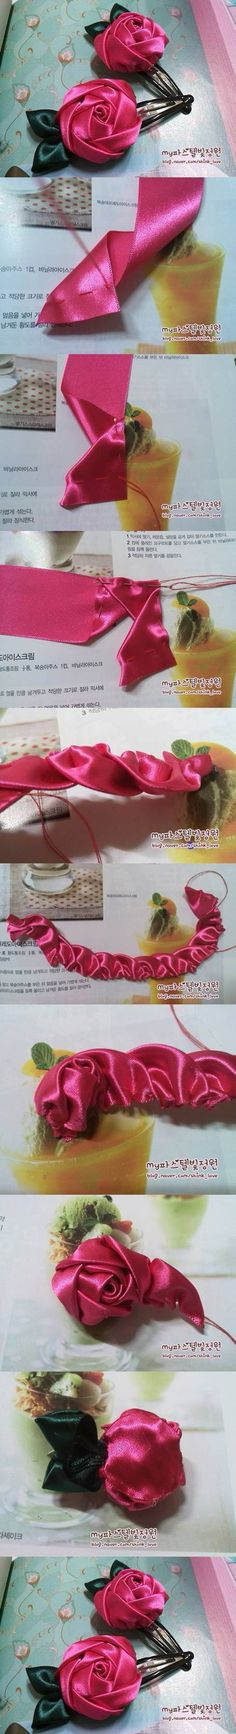 DIY Rose of Organza Ribbon DIY Rose of Organza Ribbon